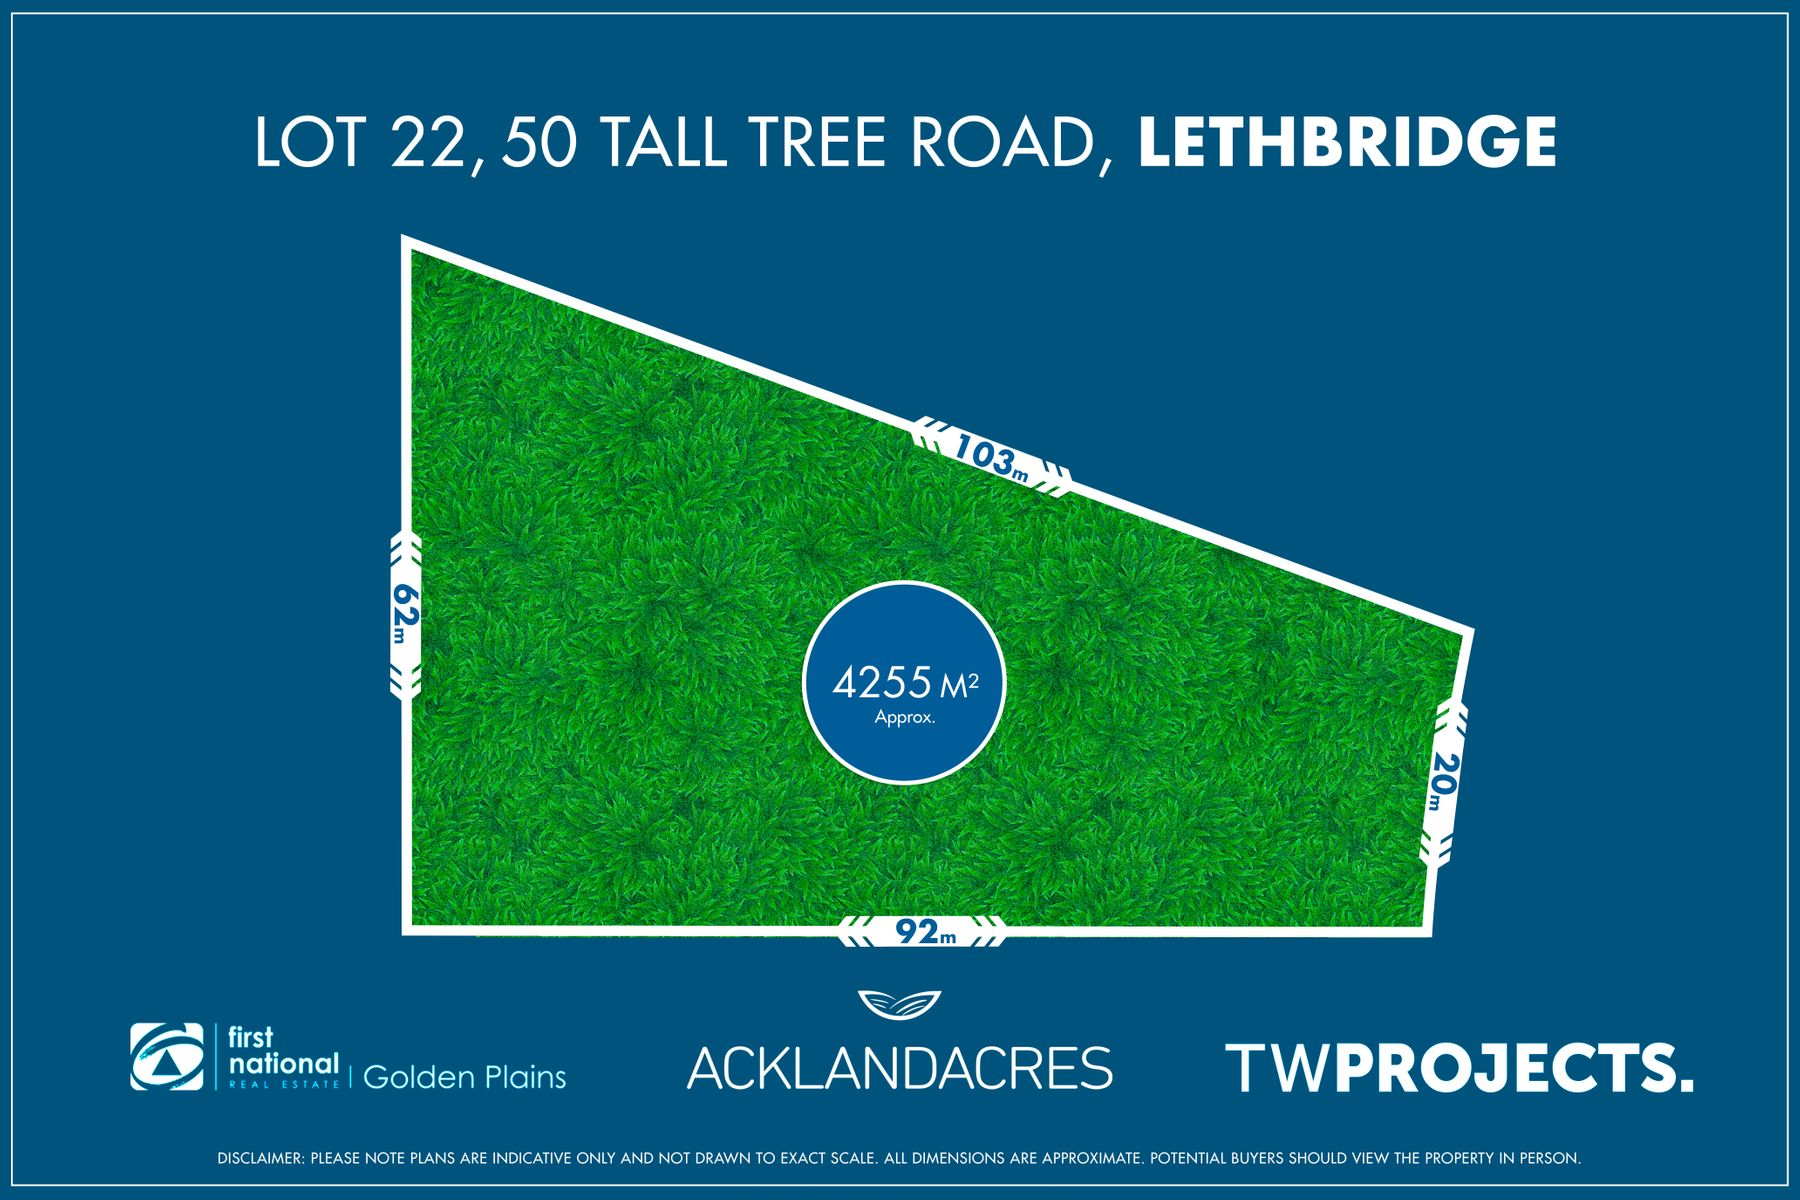 Lot 22, 50 Tall Tree Road, Lethbridge, VIC 3332